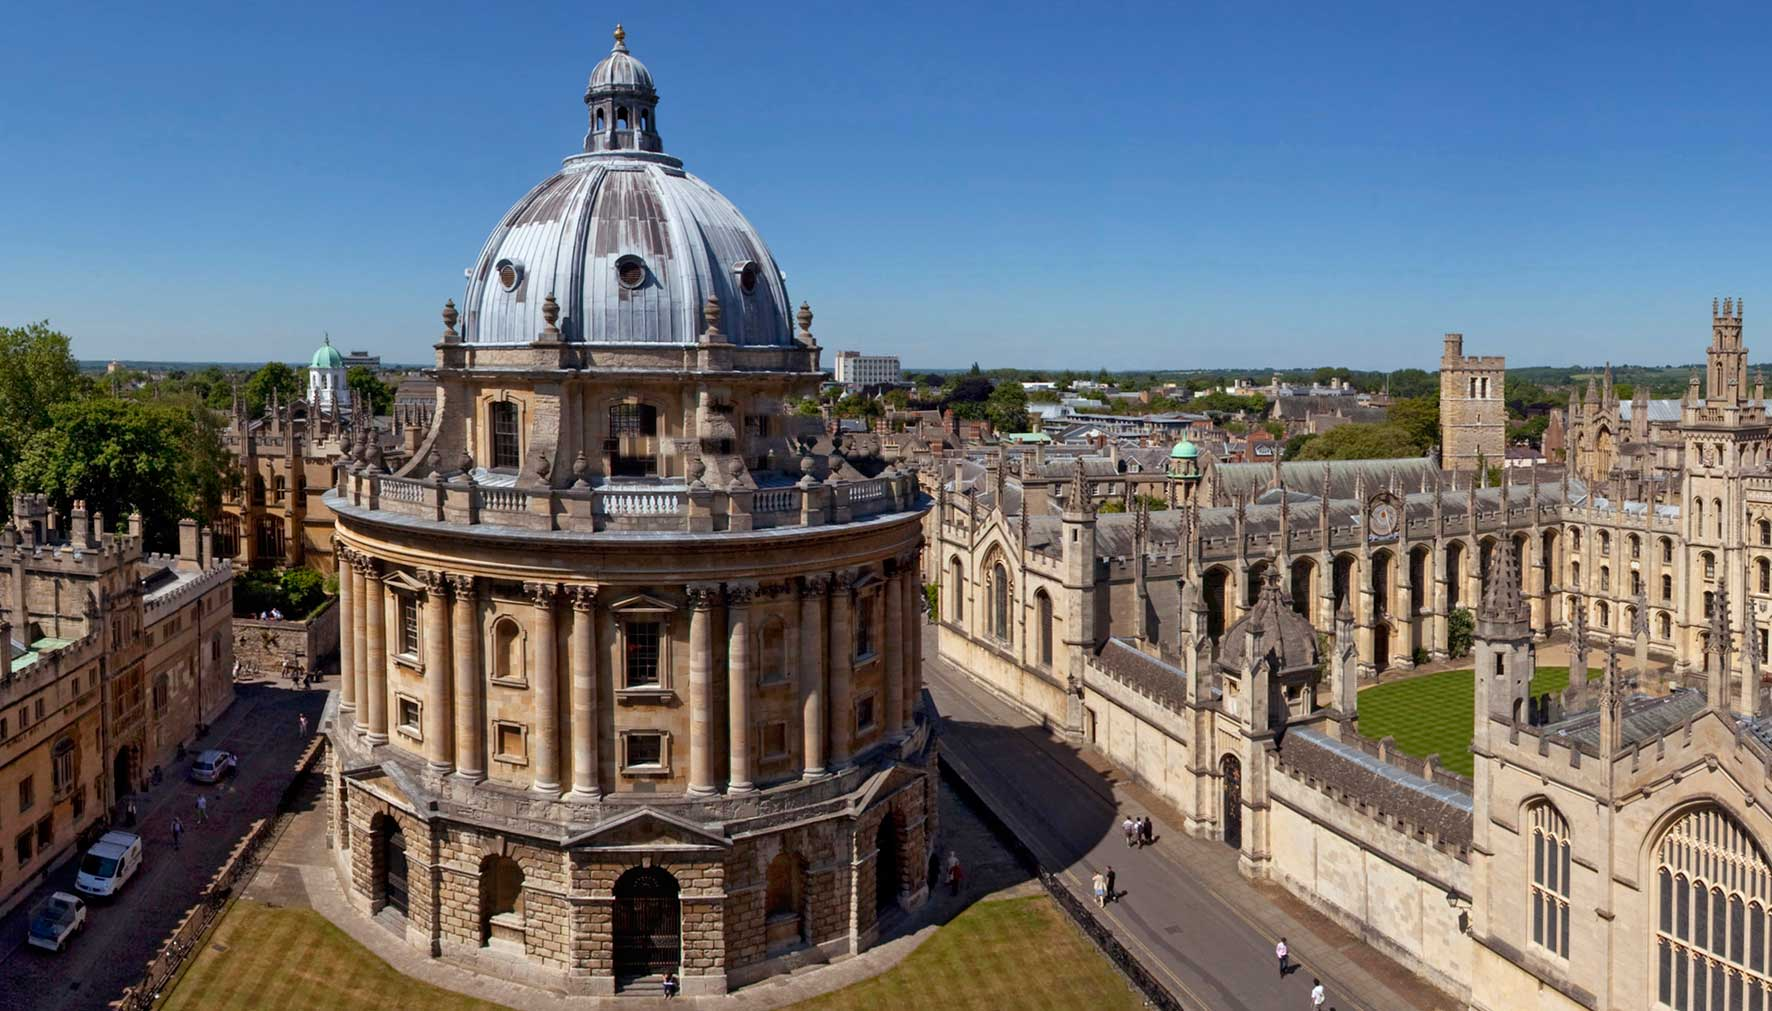 The City of Oxford, walking tours